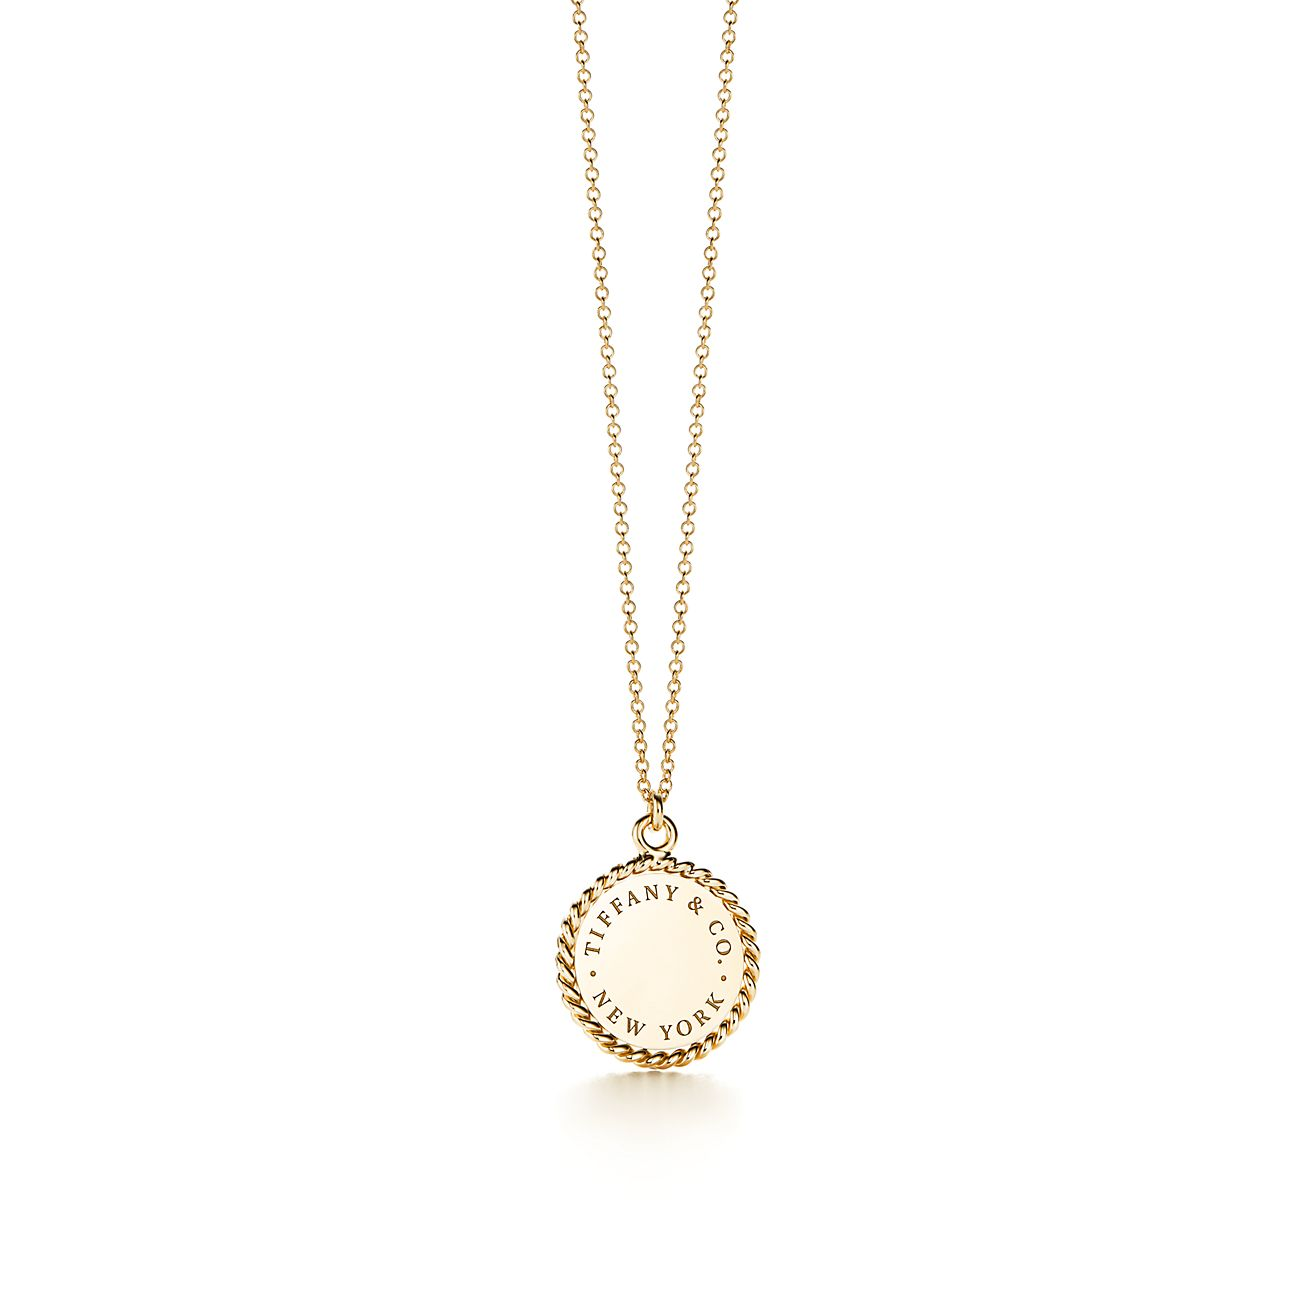 j and co jewelry and co gold necklace jewelry ideas 9719